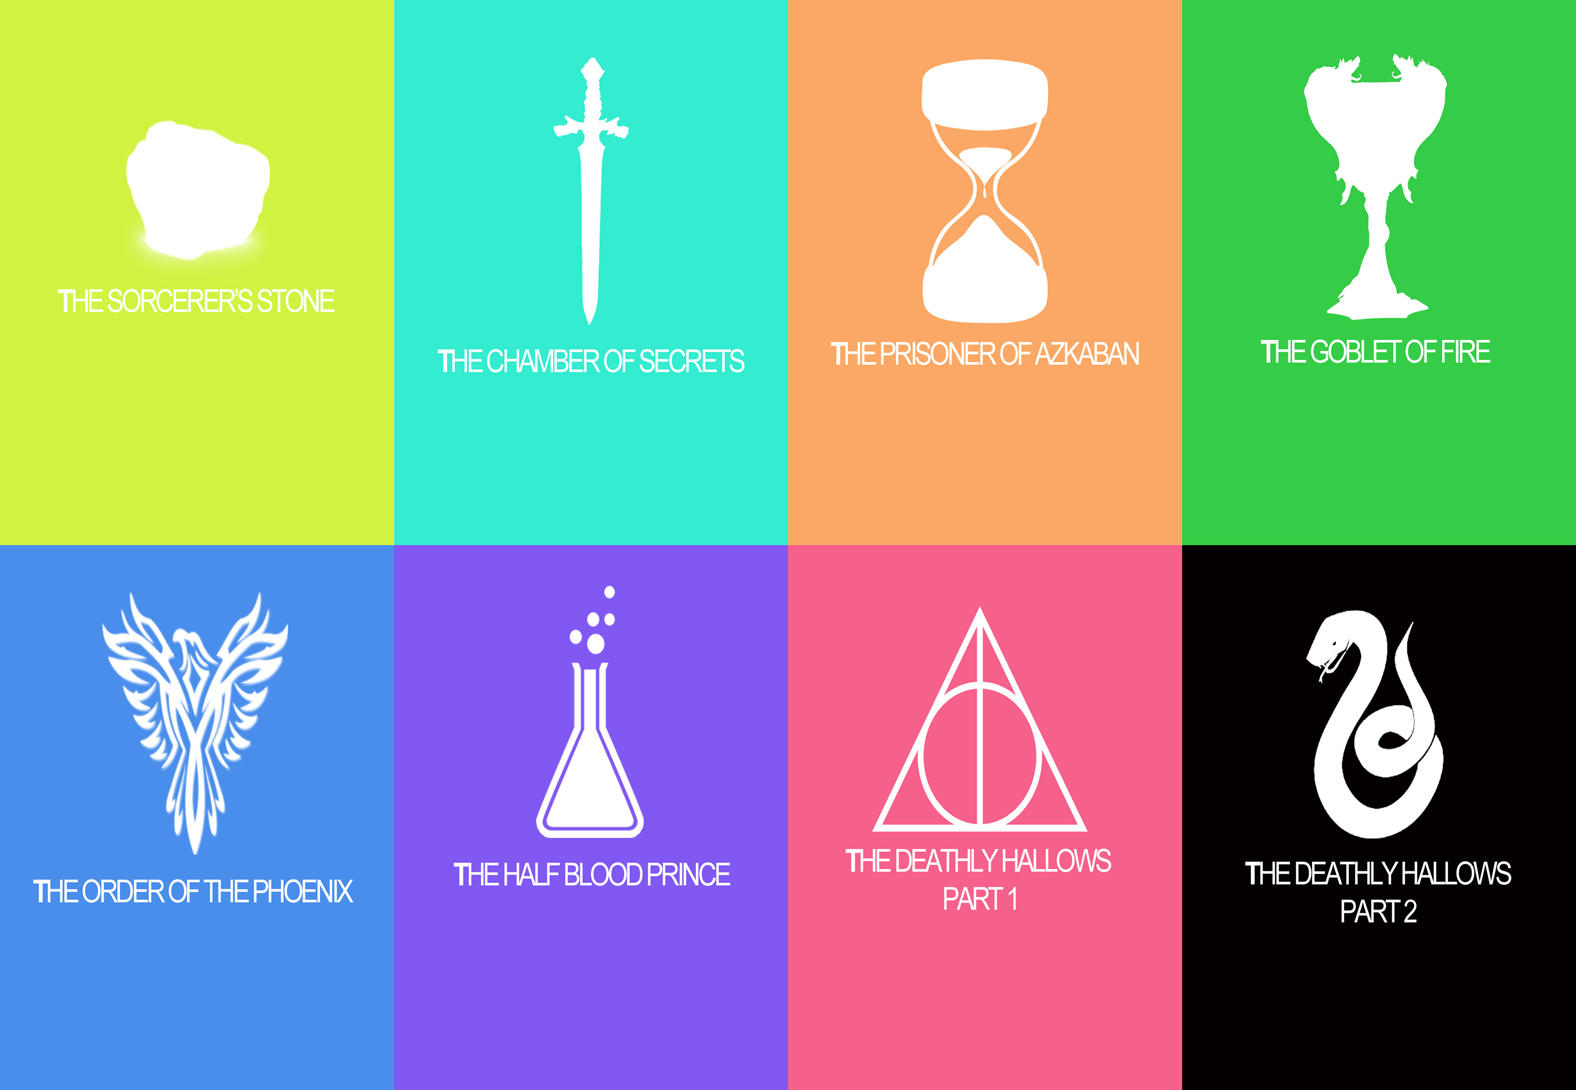 Cool Wallpaper Harry Potter Minimalistic - harry_potter_series__posters_revamp_by_athenadeniise-d5jqlno  Collection_92669.jpg